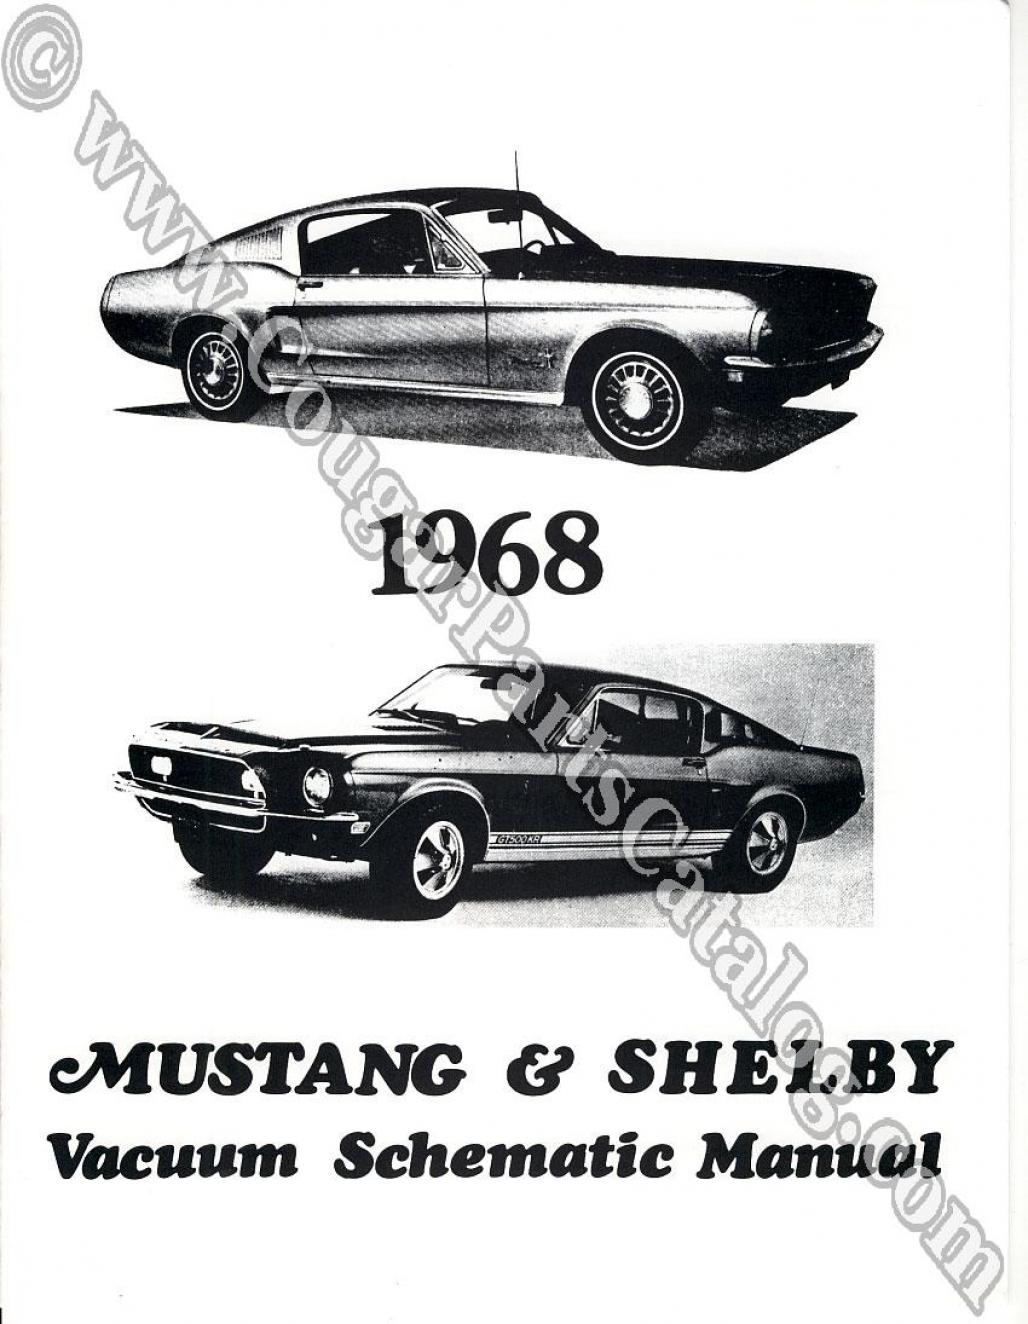 1965 ford mustang headlight wiring diagram t568b patch panel 1970 cougar vacuum free engine image for